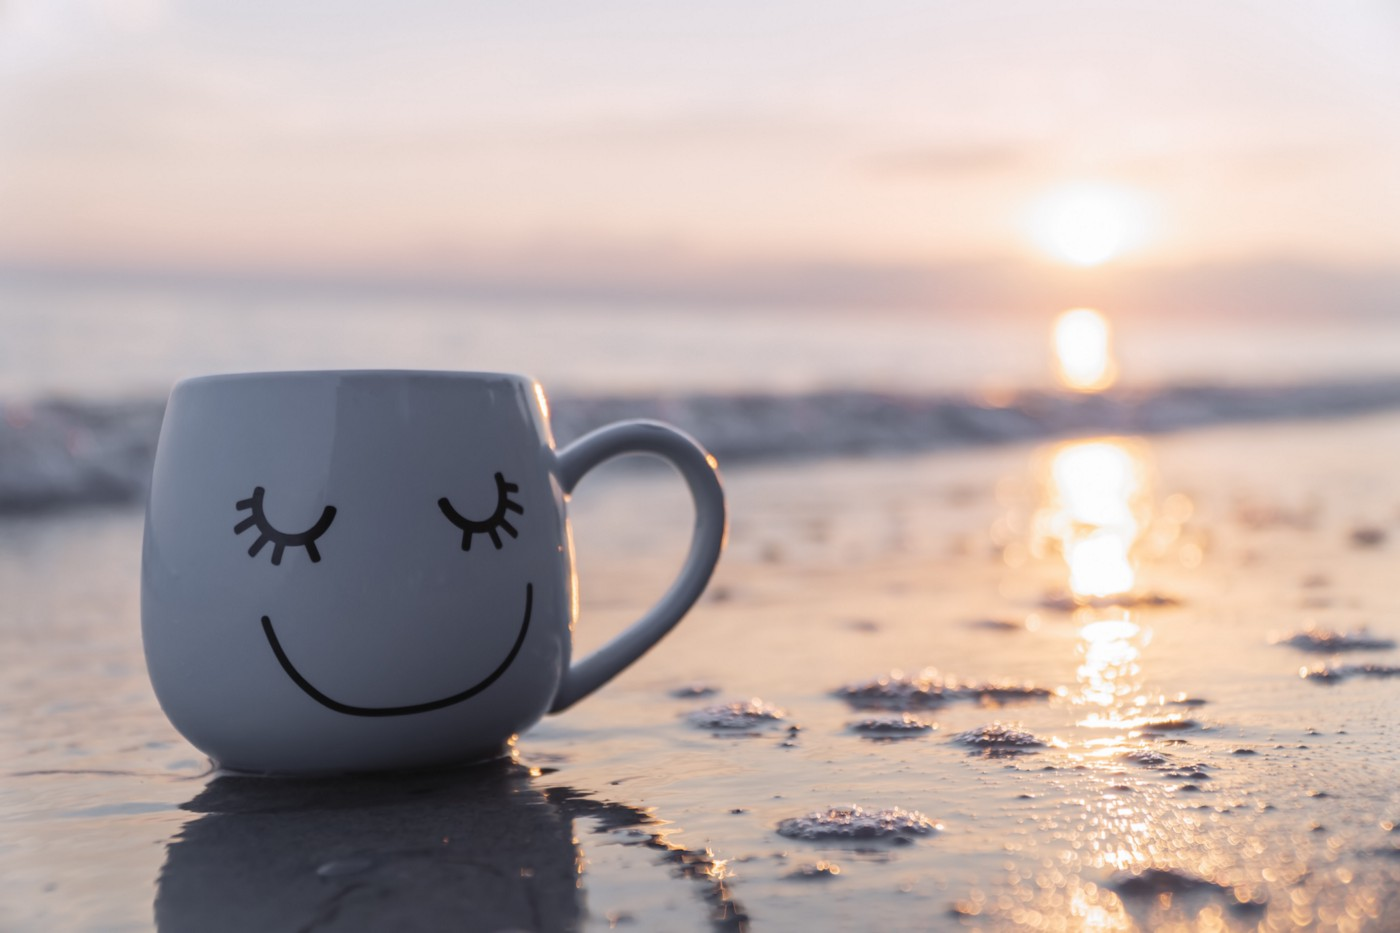 A smiley face mug placed on the sea shore.